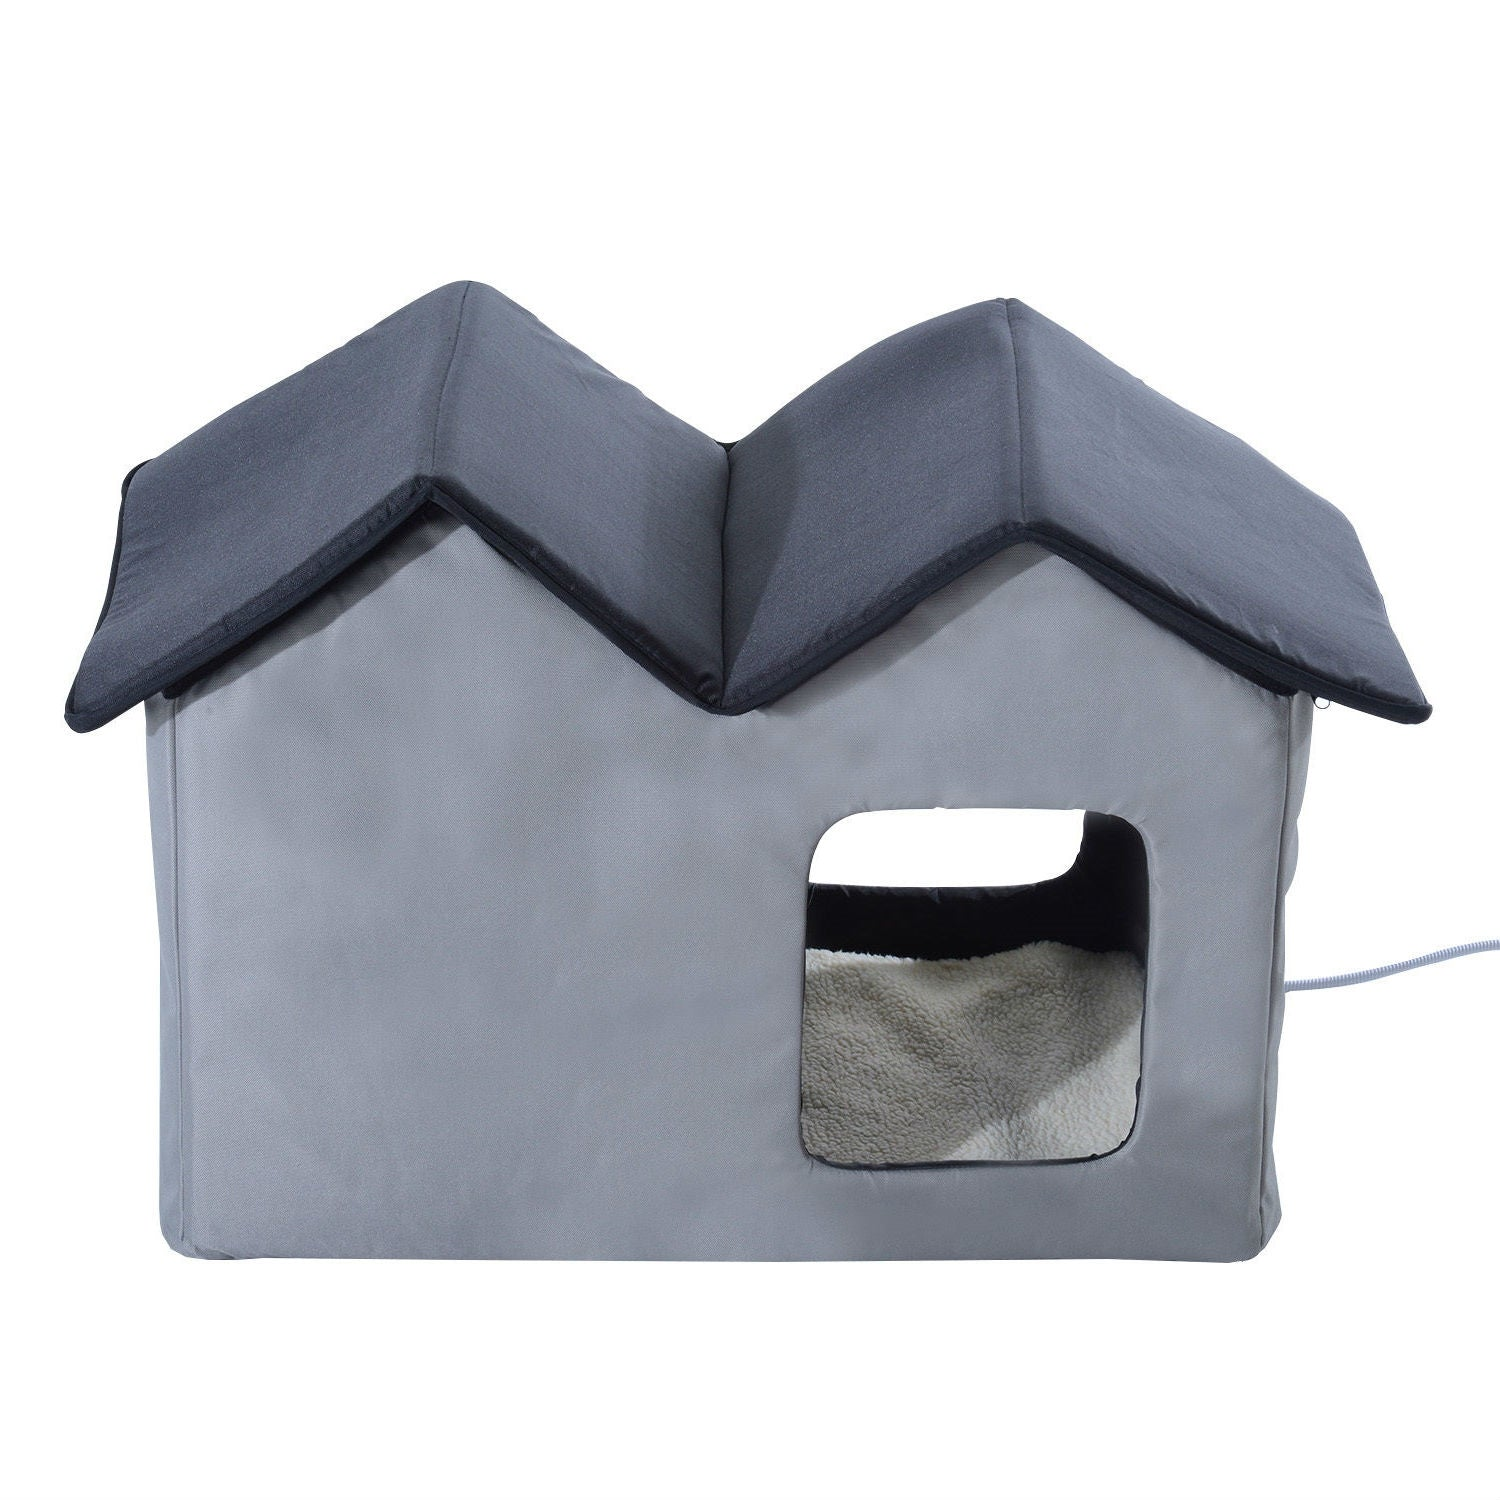 Heated Water-proof Double Wide Outdoor Cat Dog House Foldable Grey